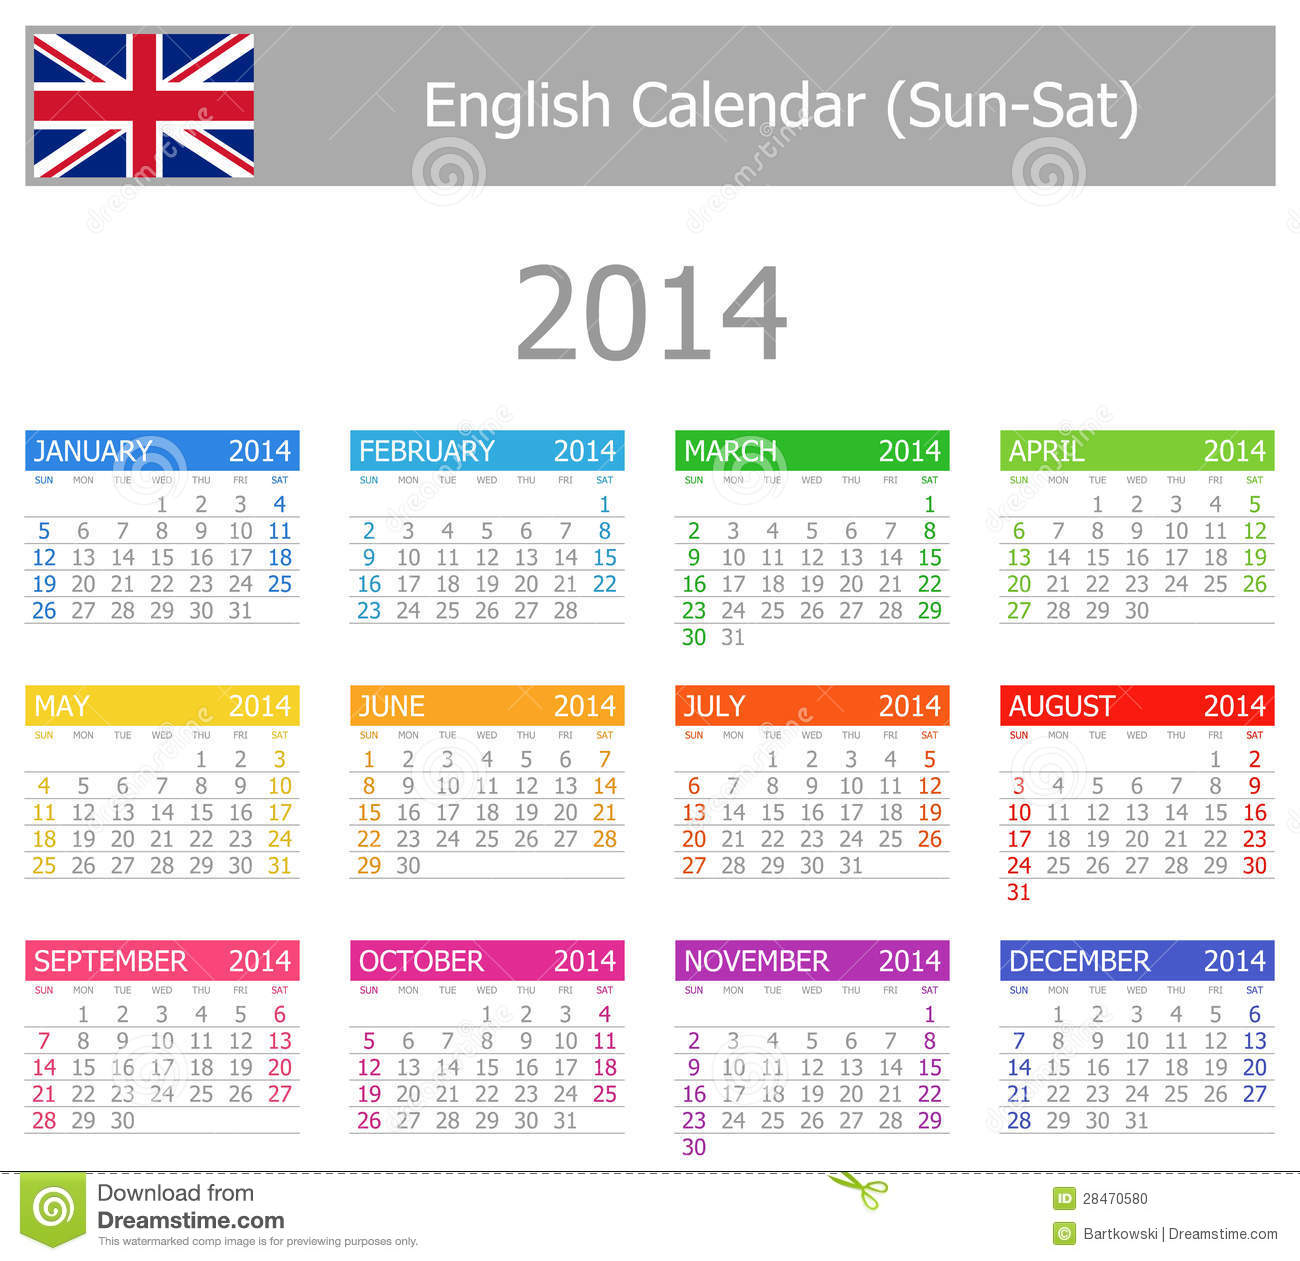 2014 English Type-1 Calendar Sun-Sat on white background.